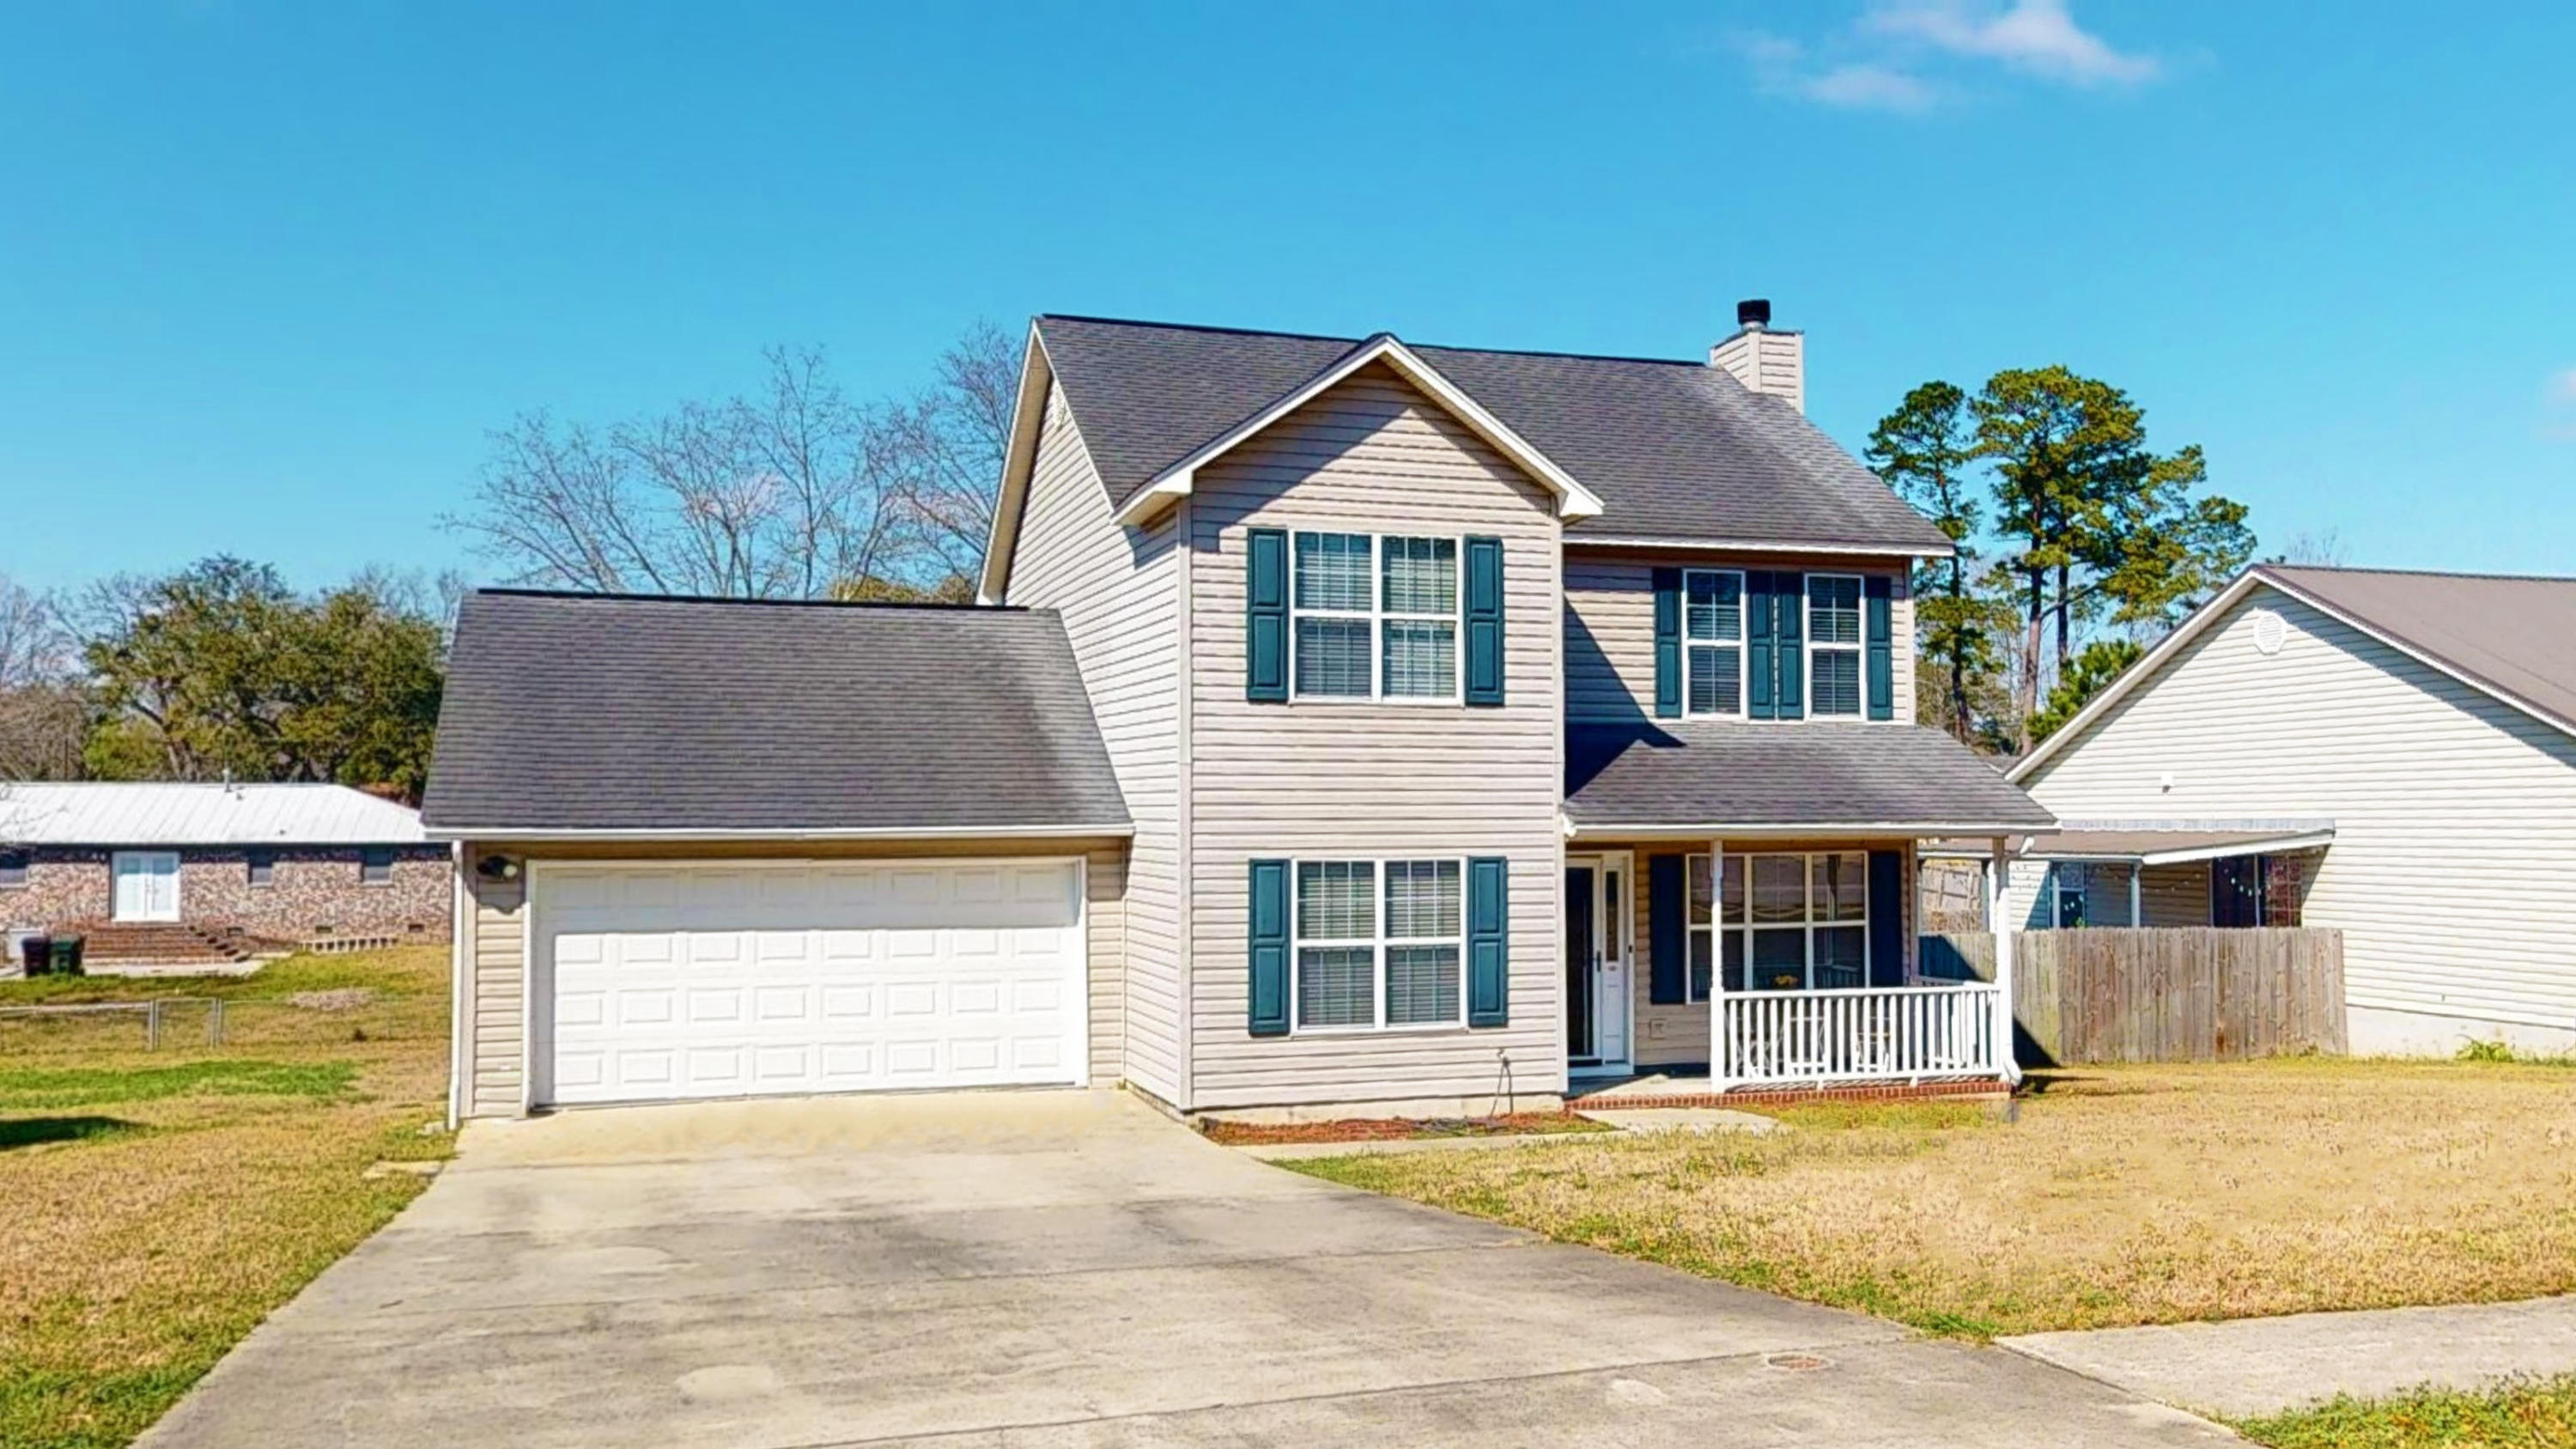 Camelot Village Homes For Sale - 113 Round Table, Goose Creek, SC - 27